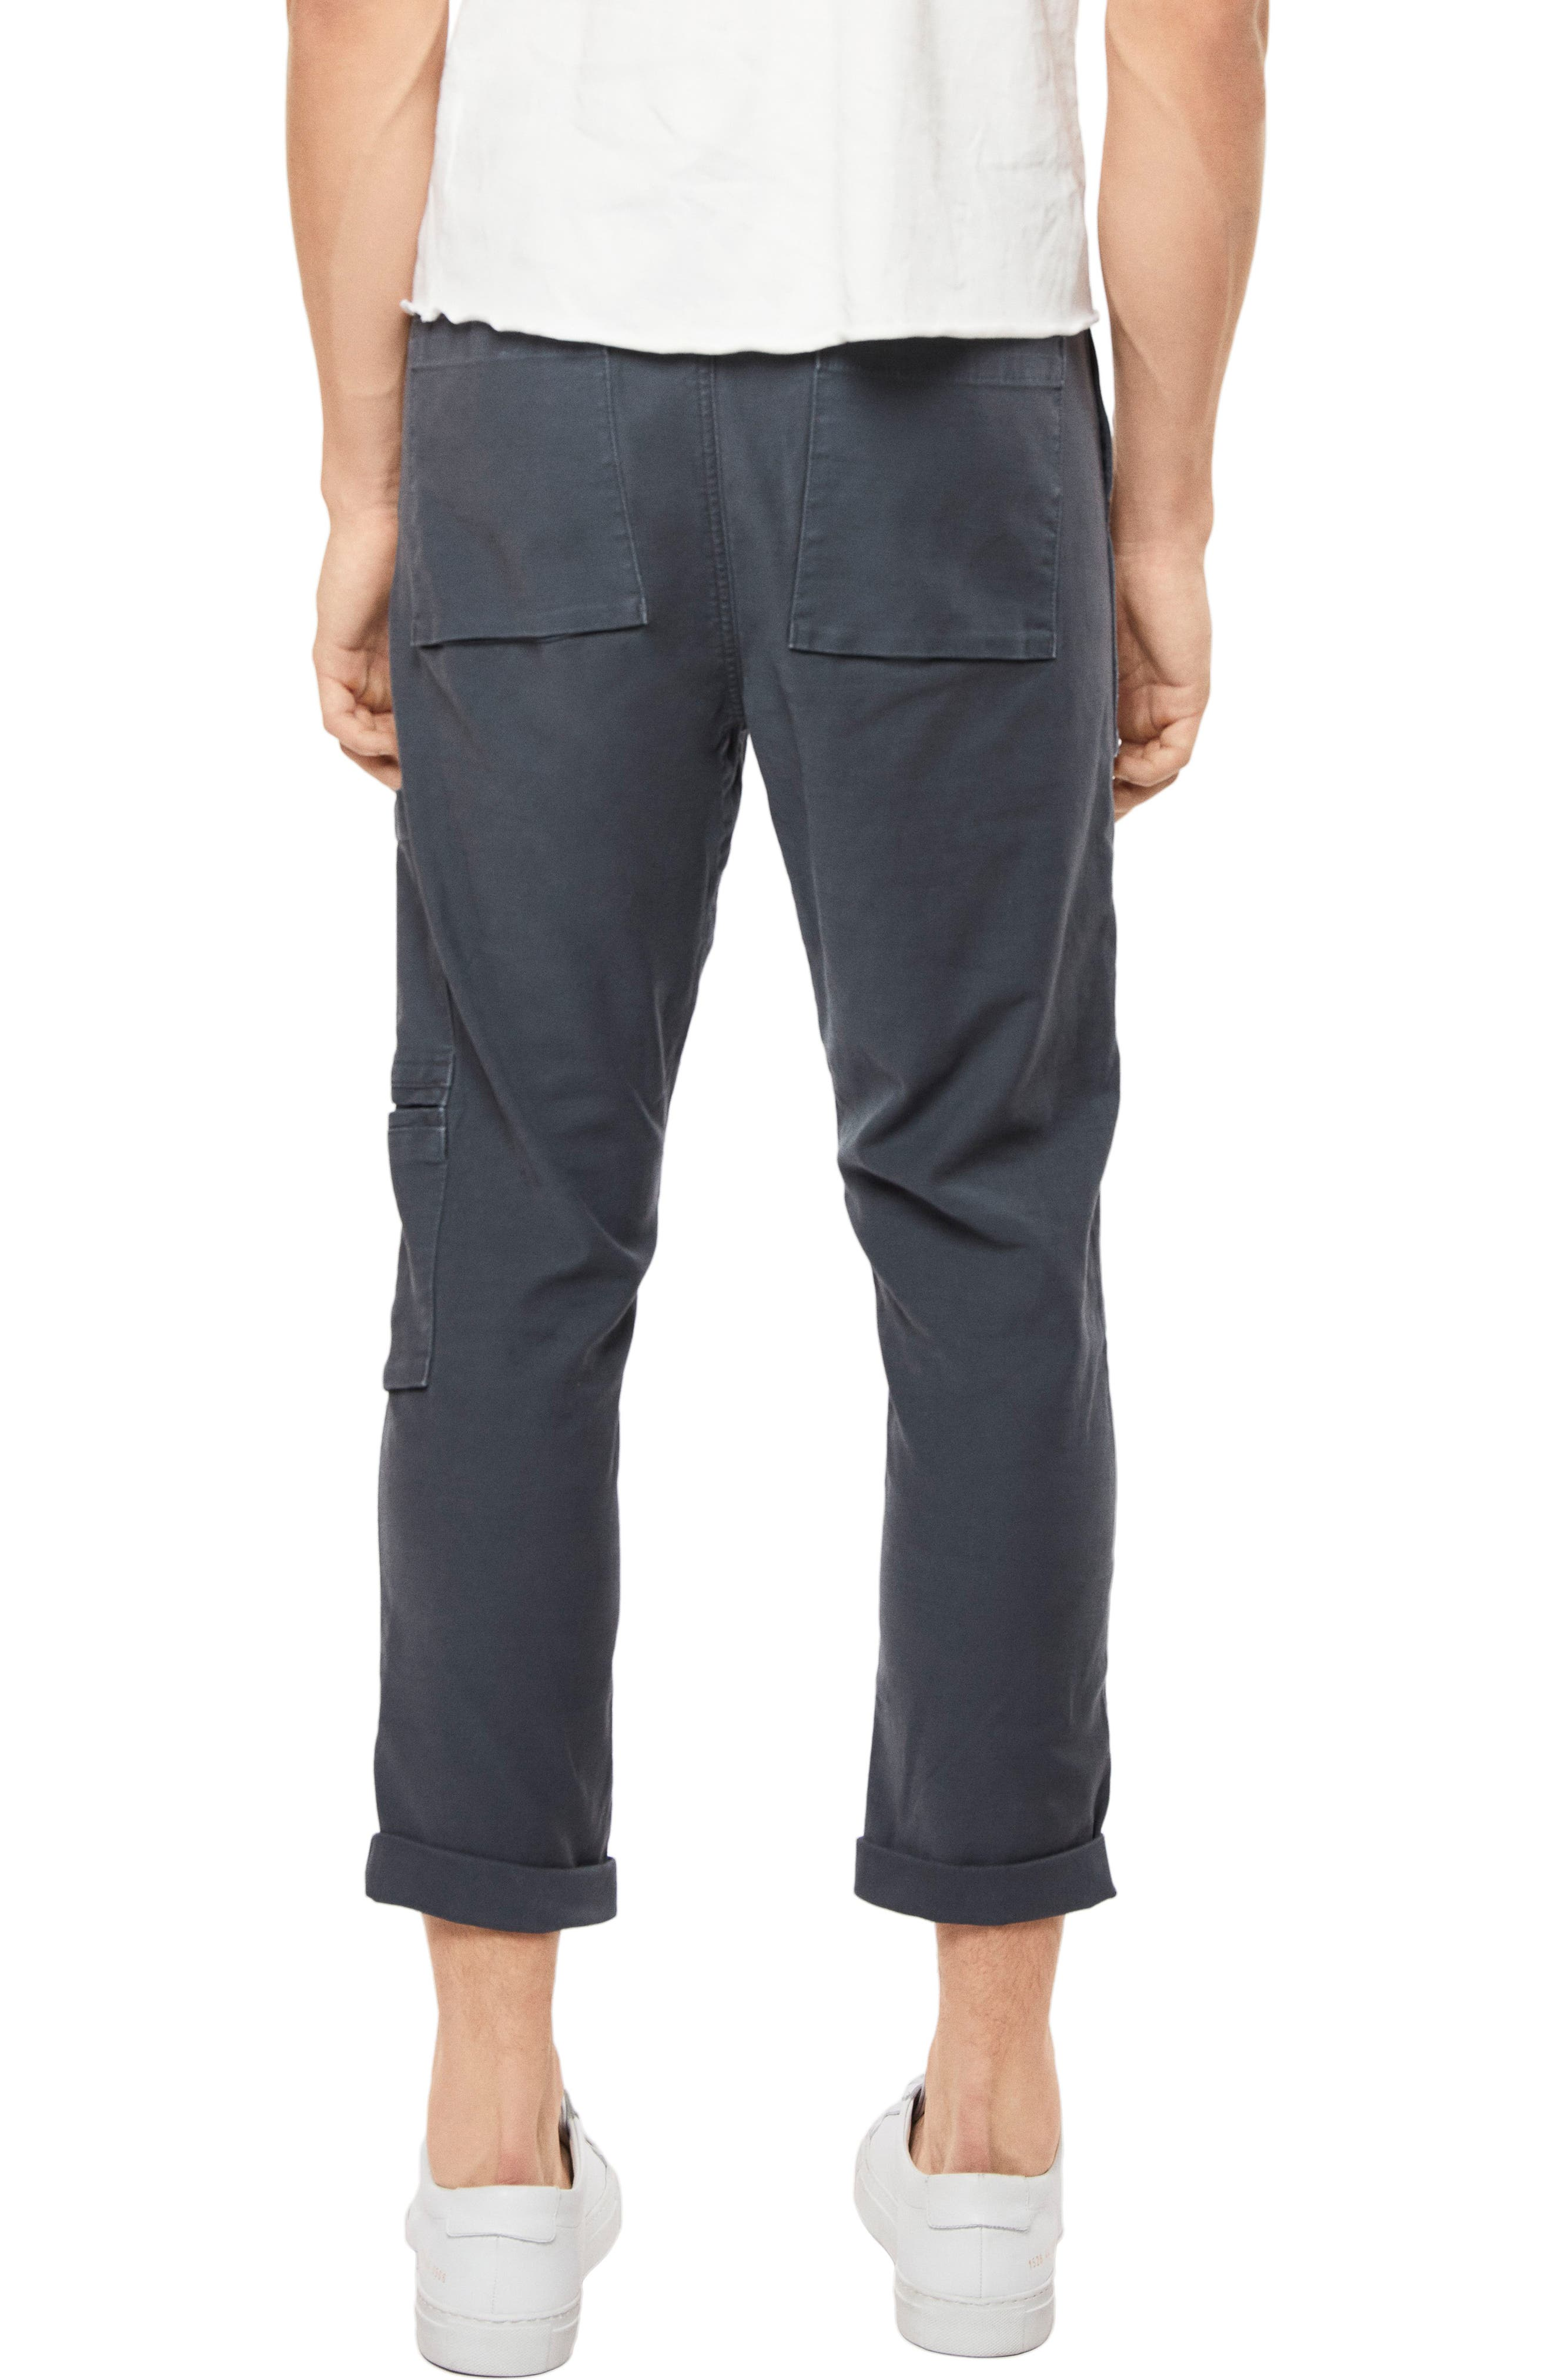 Koeficient Relaxed Fit Cargo Crop Pants,                             Alternate thumbnail 2, color,                             400